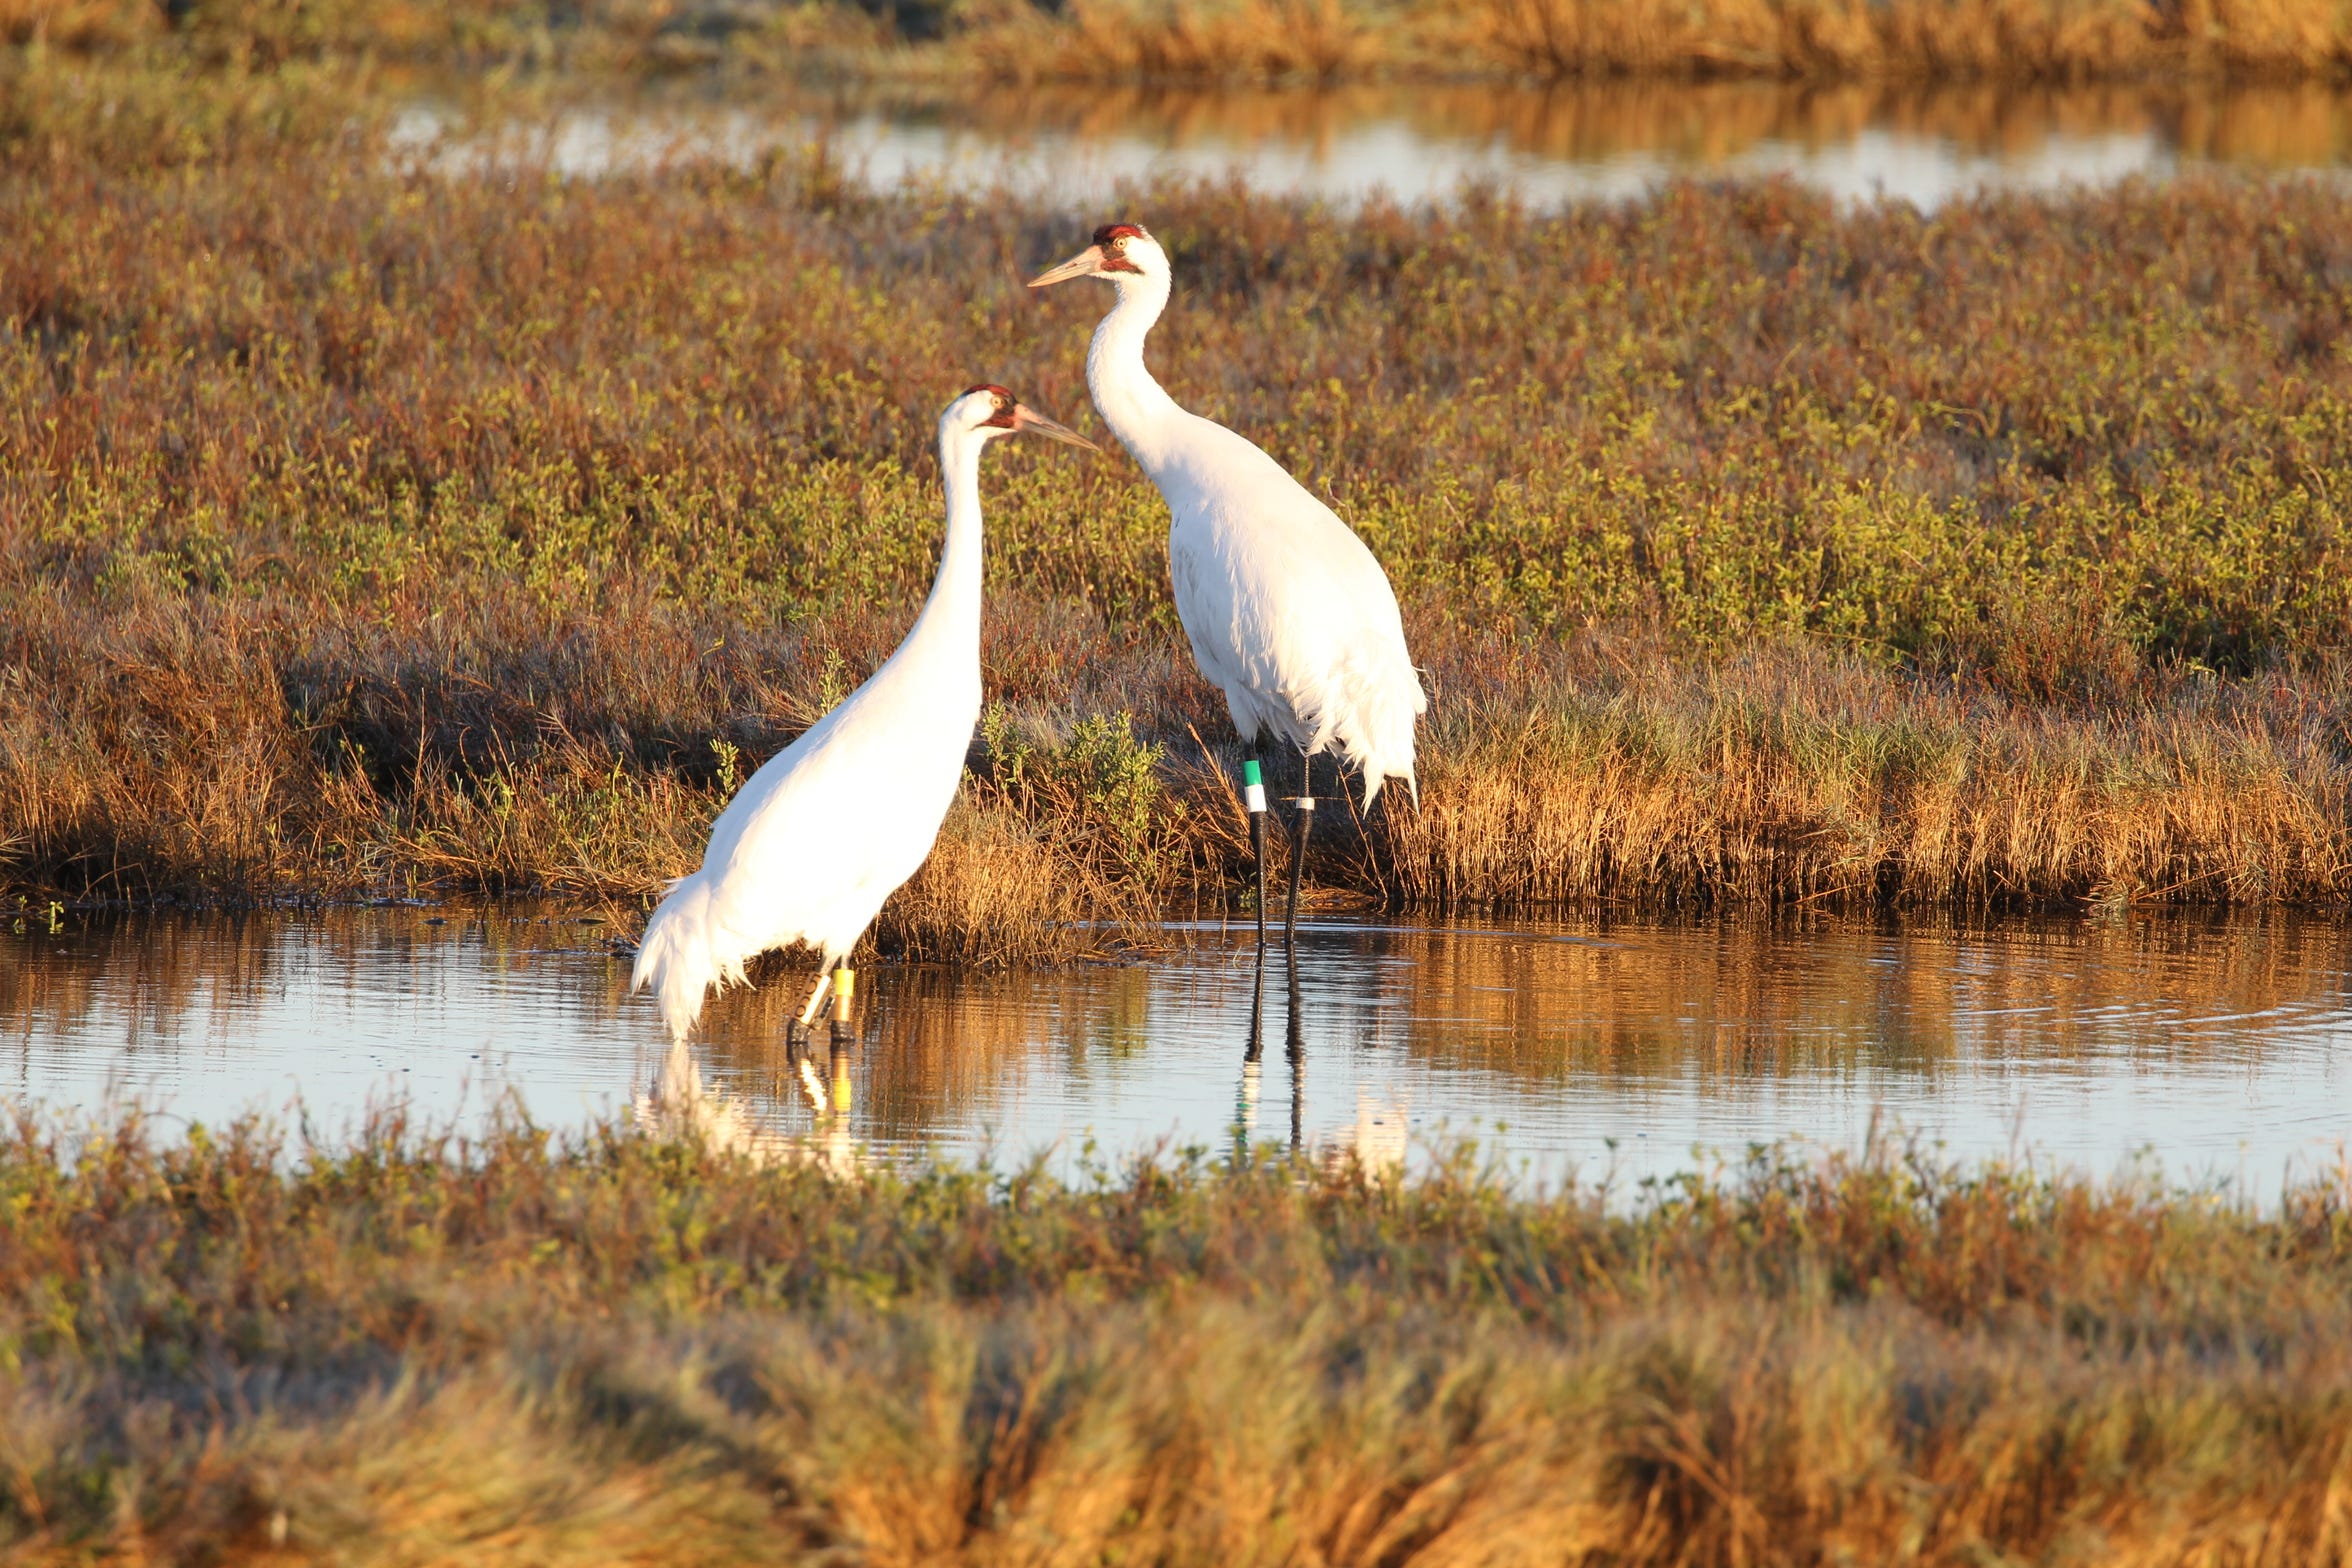 The habitat in and around the Aransas National Wildlife Refuge where whooping cranes spend winter provide enough food for the iconic birds this year.